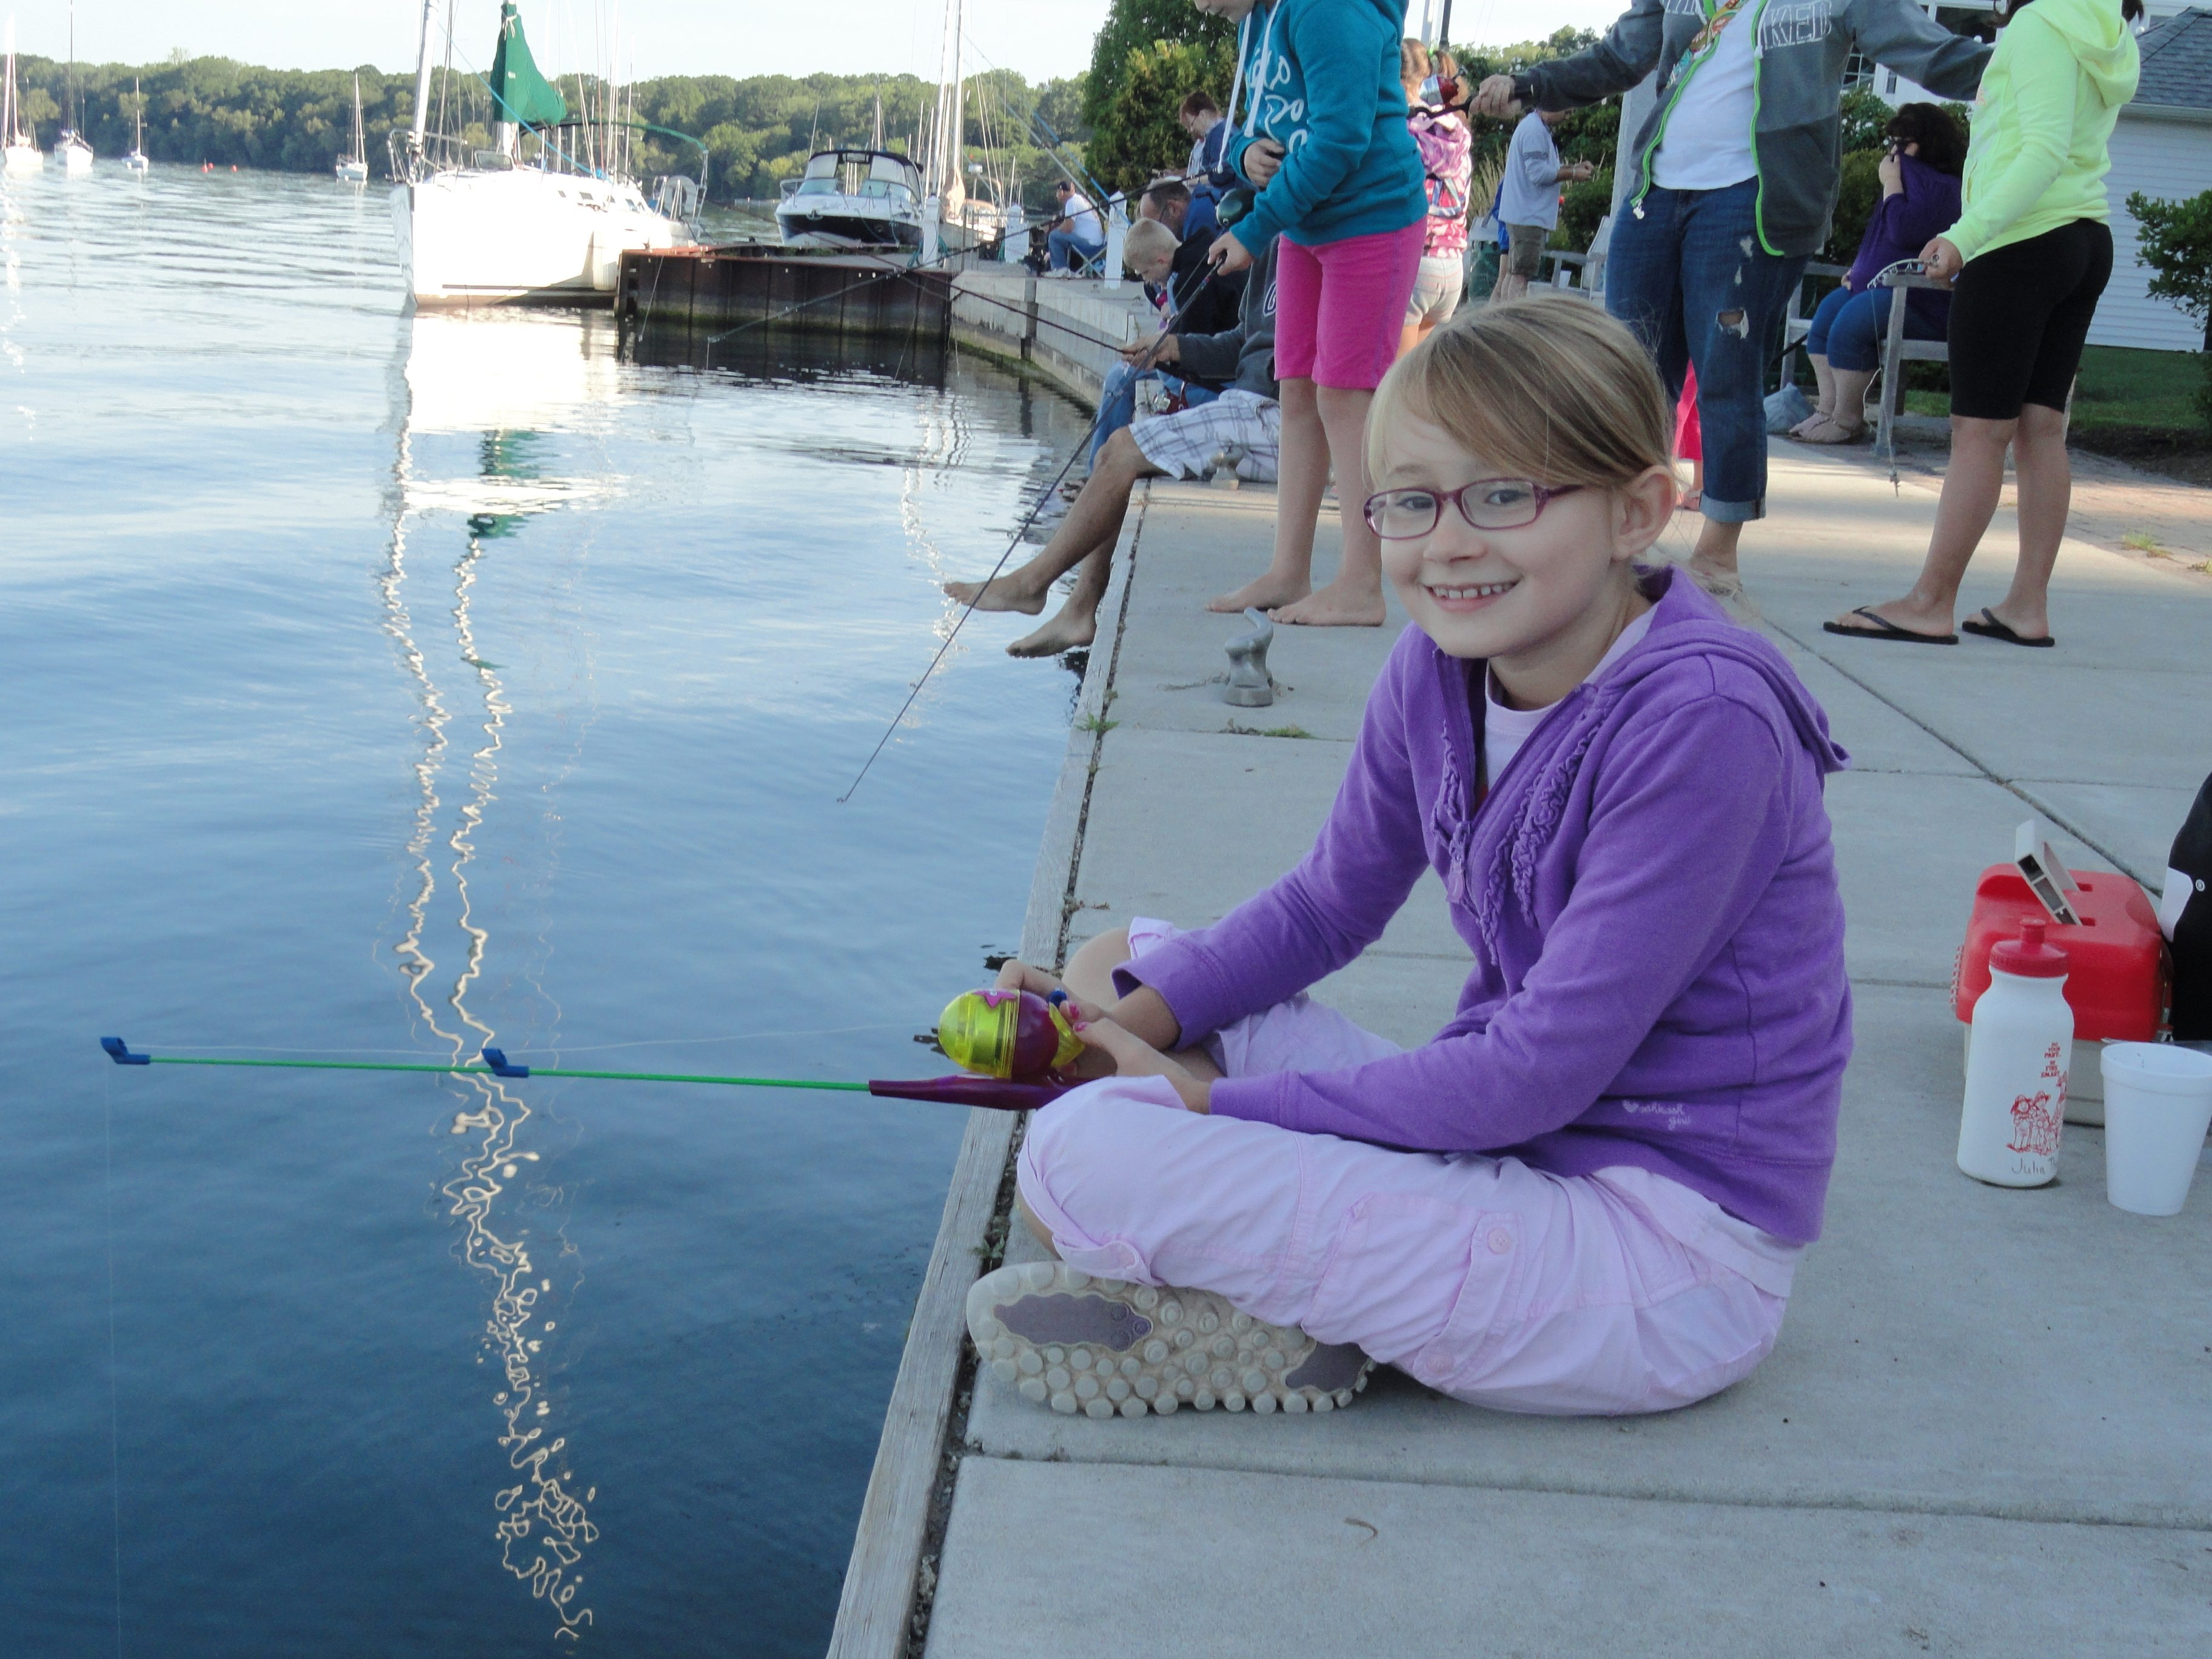 Julia Thomas fishing during last year's Fishing Derby, which is sponsored by the Niagara River Anglers. It is one of many events Saturday in Youngstown.